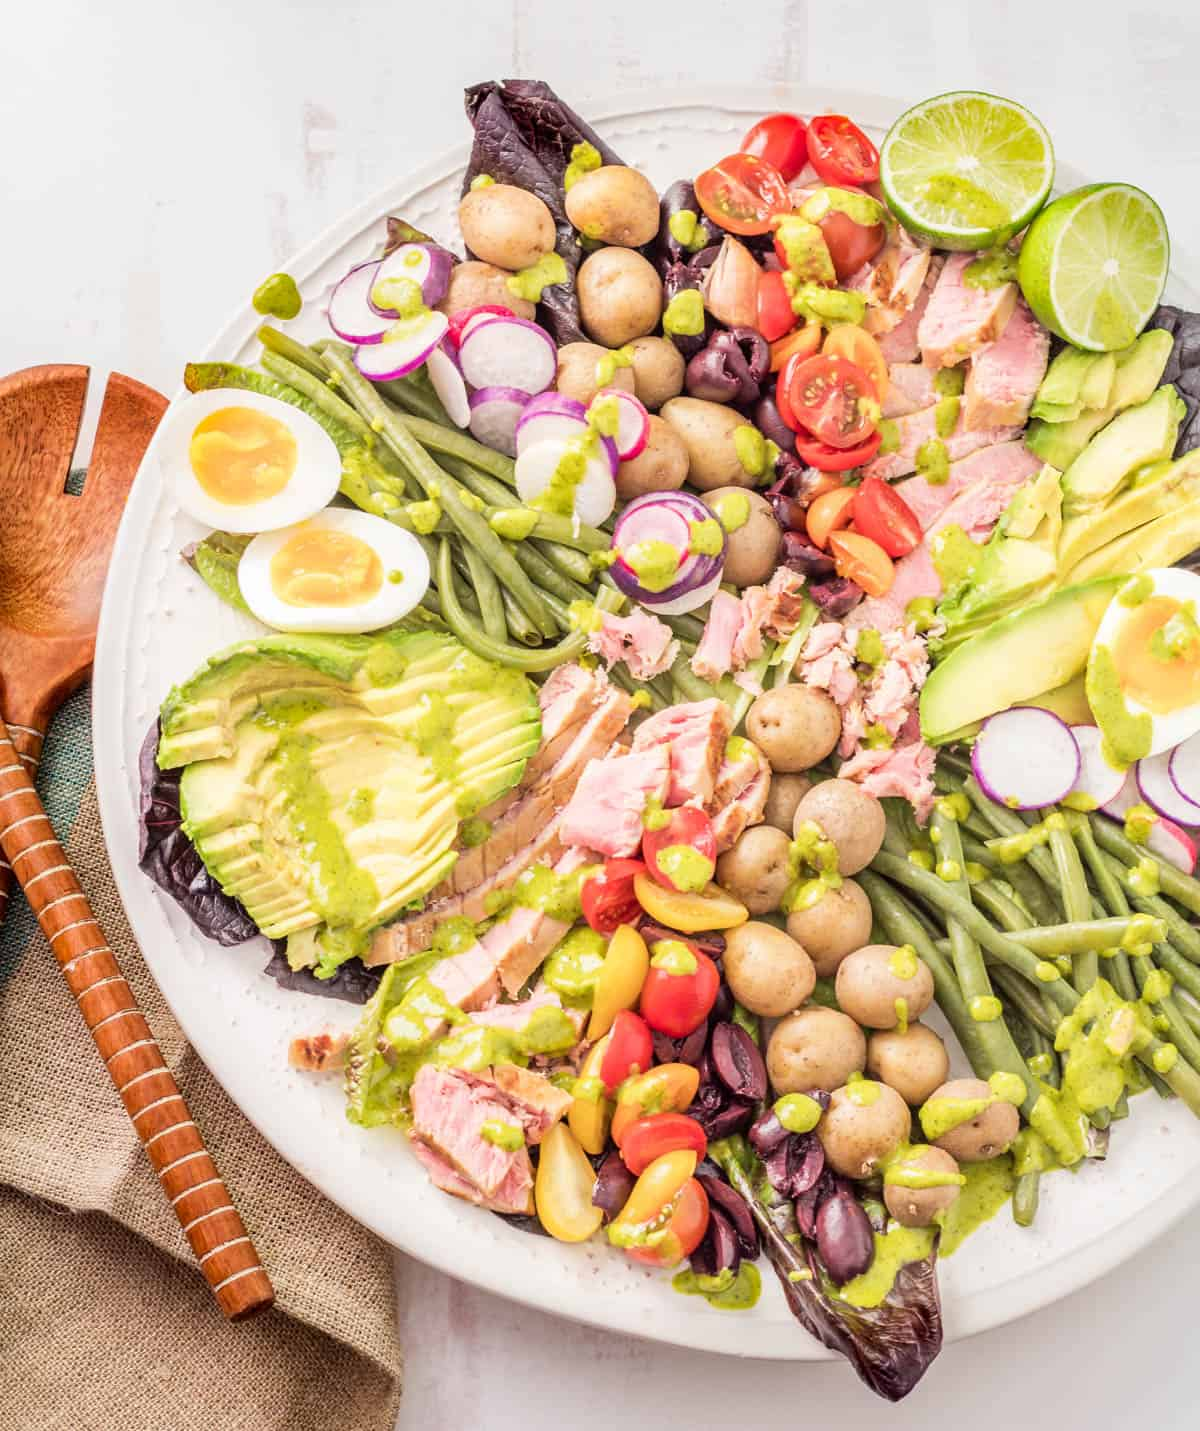 The completed Nicoise salad on a white platter with wood salad utensils and a beige linen napkin.